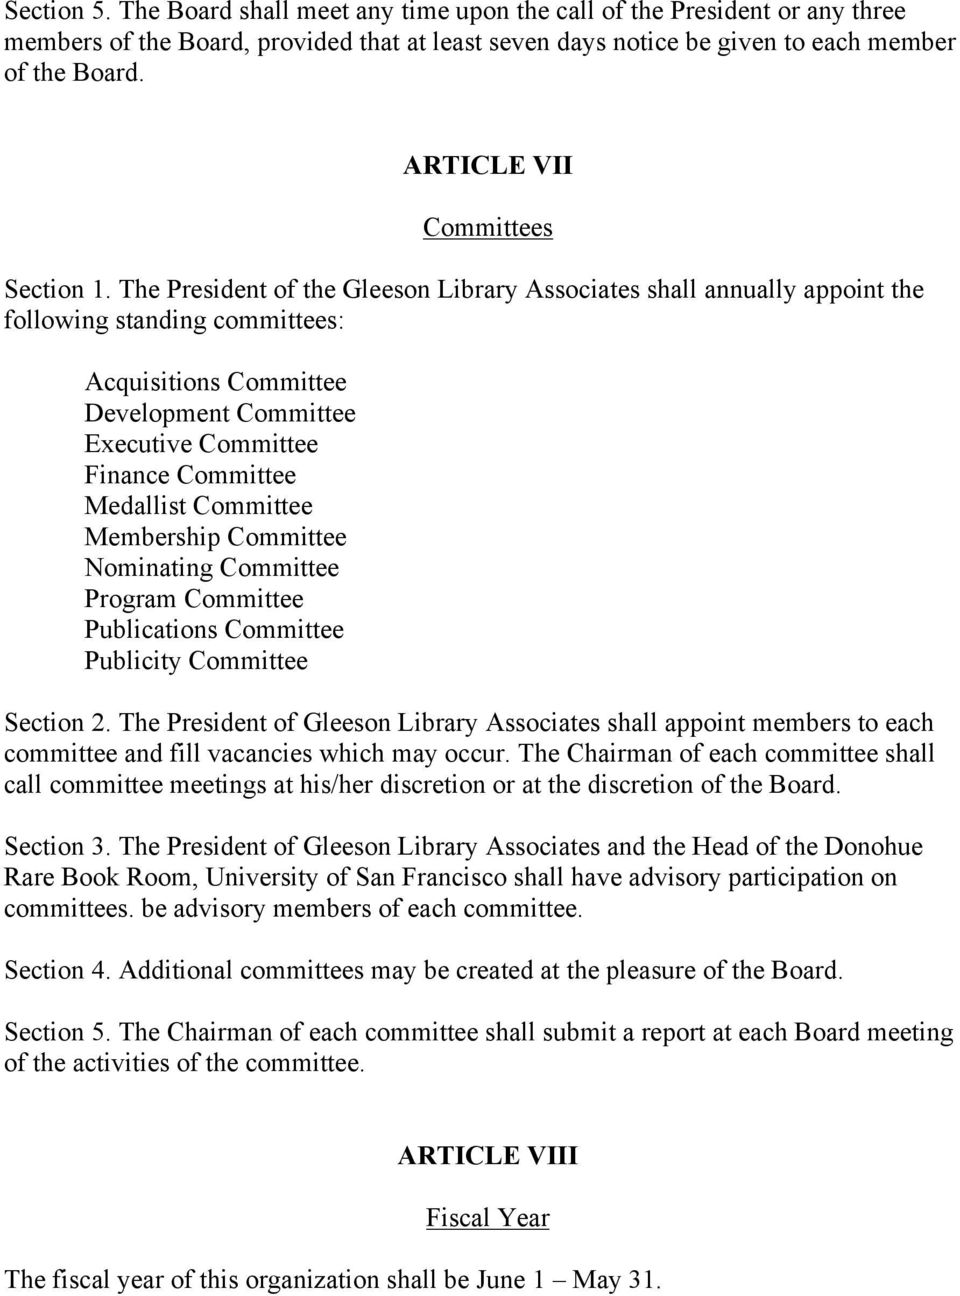 The President of the Gleeson Library Associates shall annually appoint the following standing committees: Acquisitions Committee Development Committee Executive Committee Finance Committee Medallist